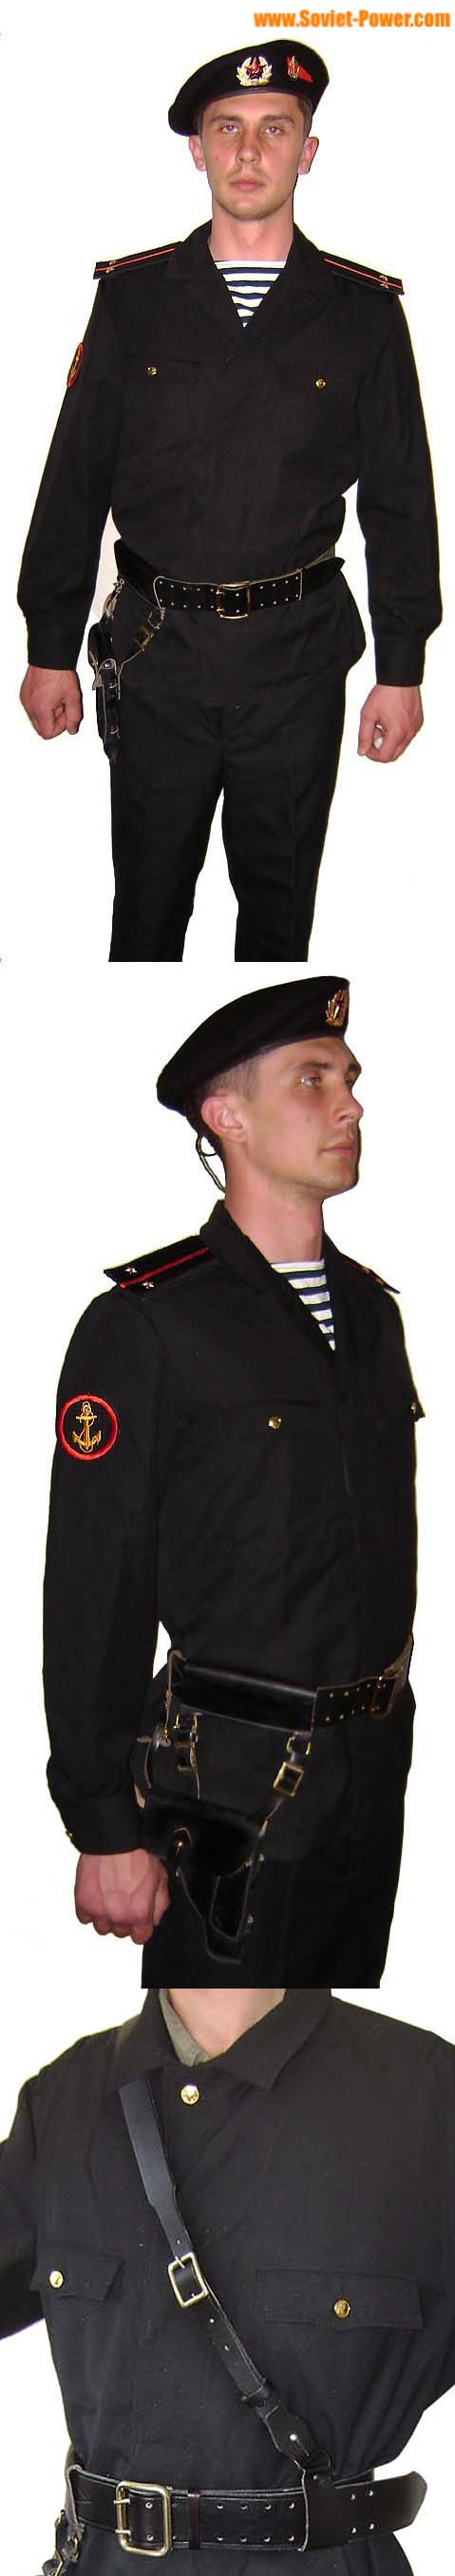 7f877dff227 USSR   Russian Army MARINES military uniform for sale - buy online